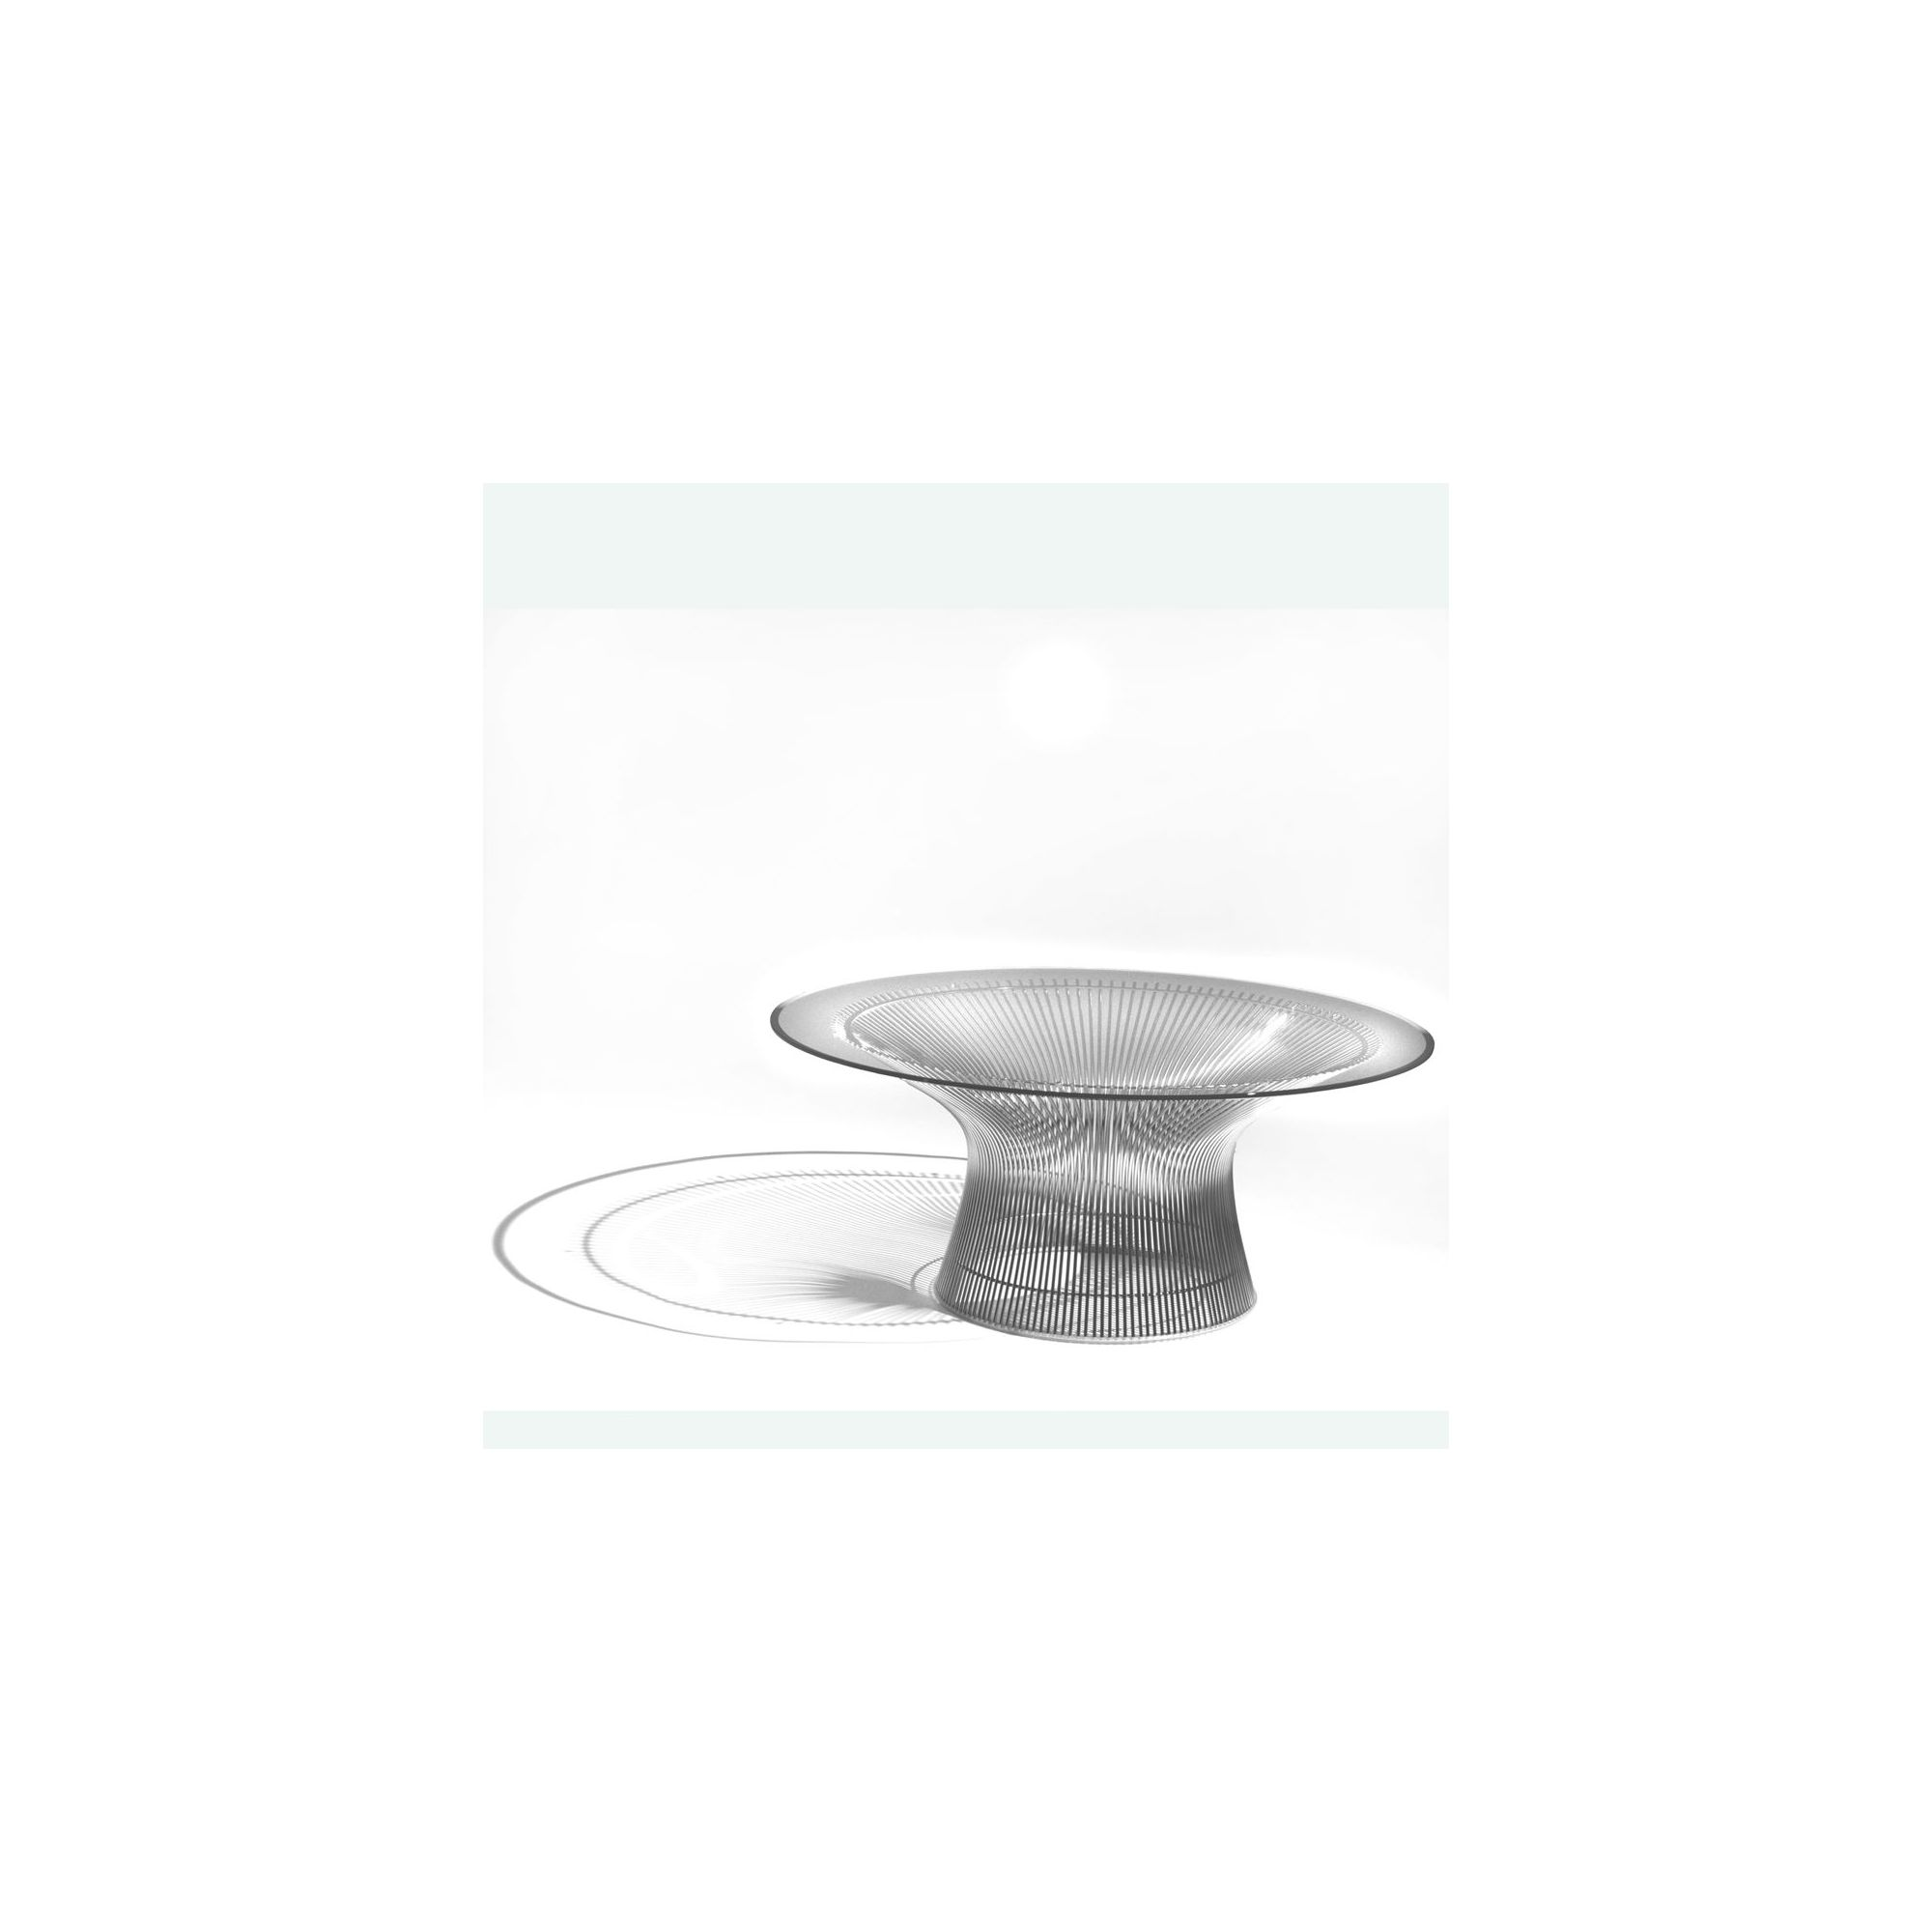 Knoll Coffee Table by Warren Platner - 91.5cm Dia / Polished Nickel / Clear Glass at Tesco Direct